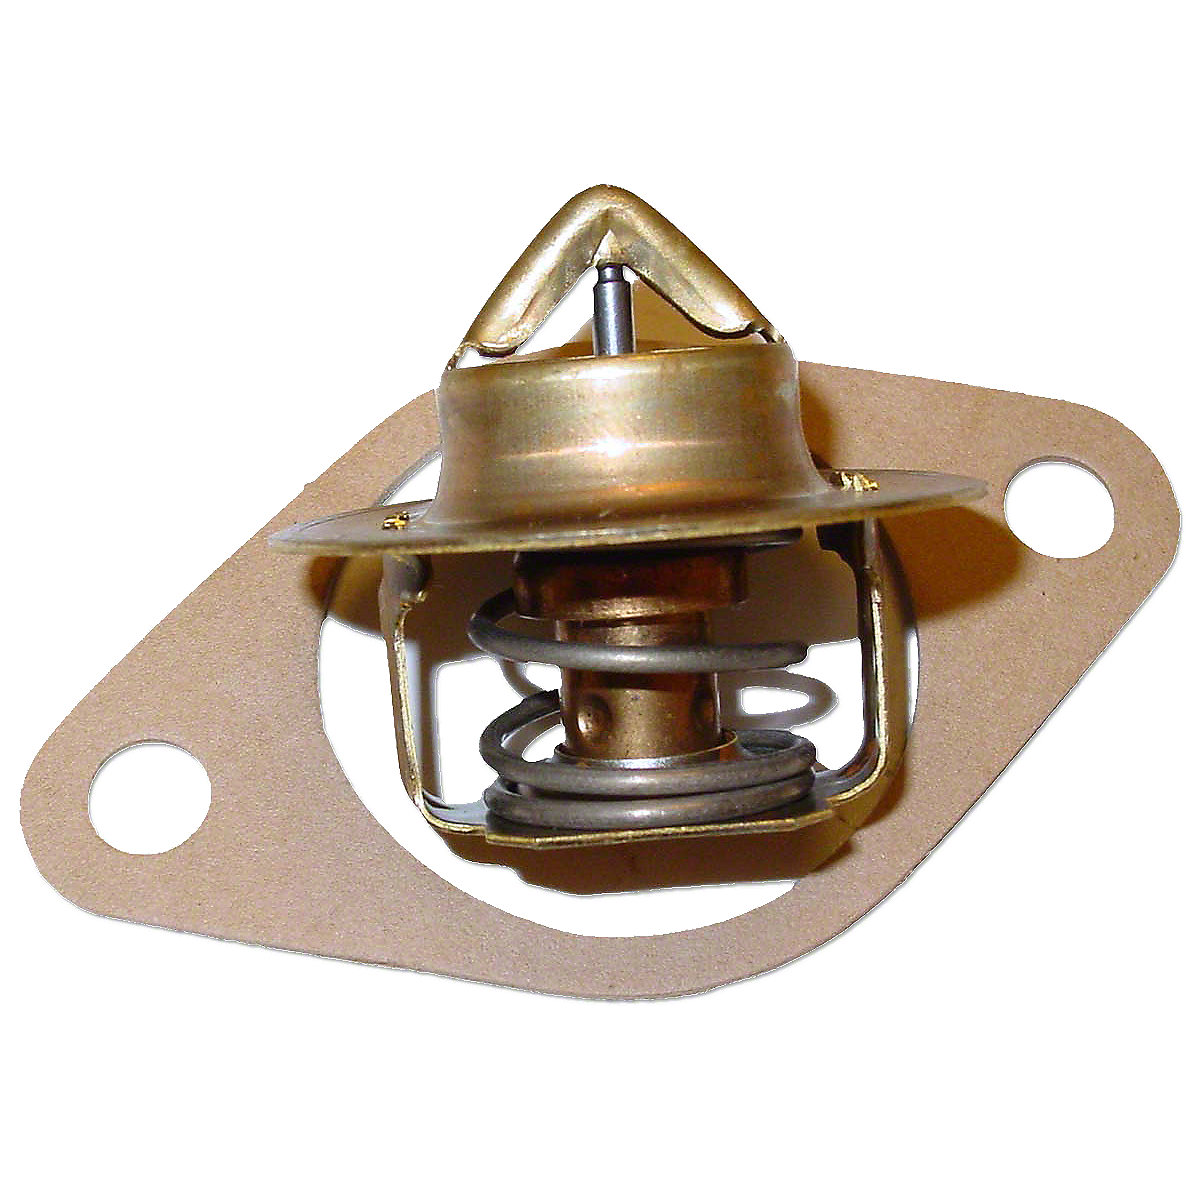 160 Degree Thermostat And Gasket For Massey Ferguson:  35, 50, 65, 135, 150, 165, 175, 180, 40, TO35, 50, Massey Harris: Colt 21, 20, 22, 50.